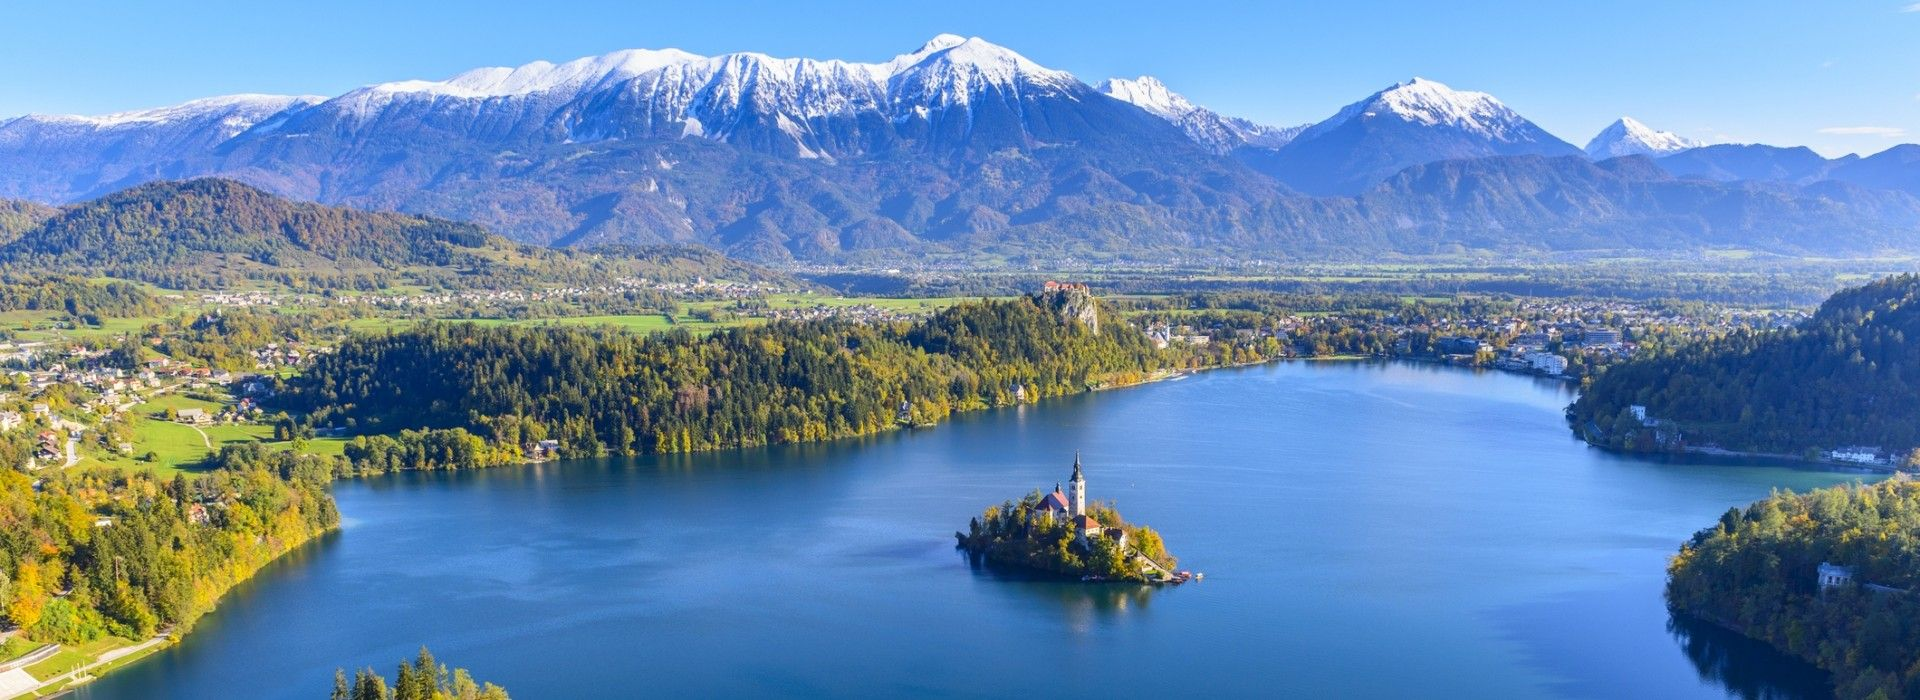 Slovenia Tours and Trips to Slovenia